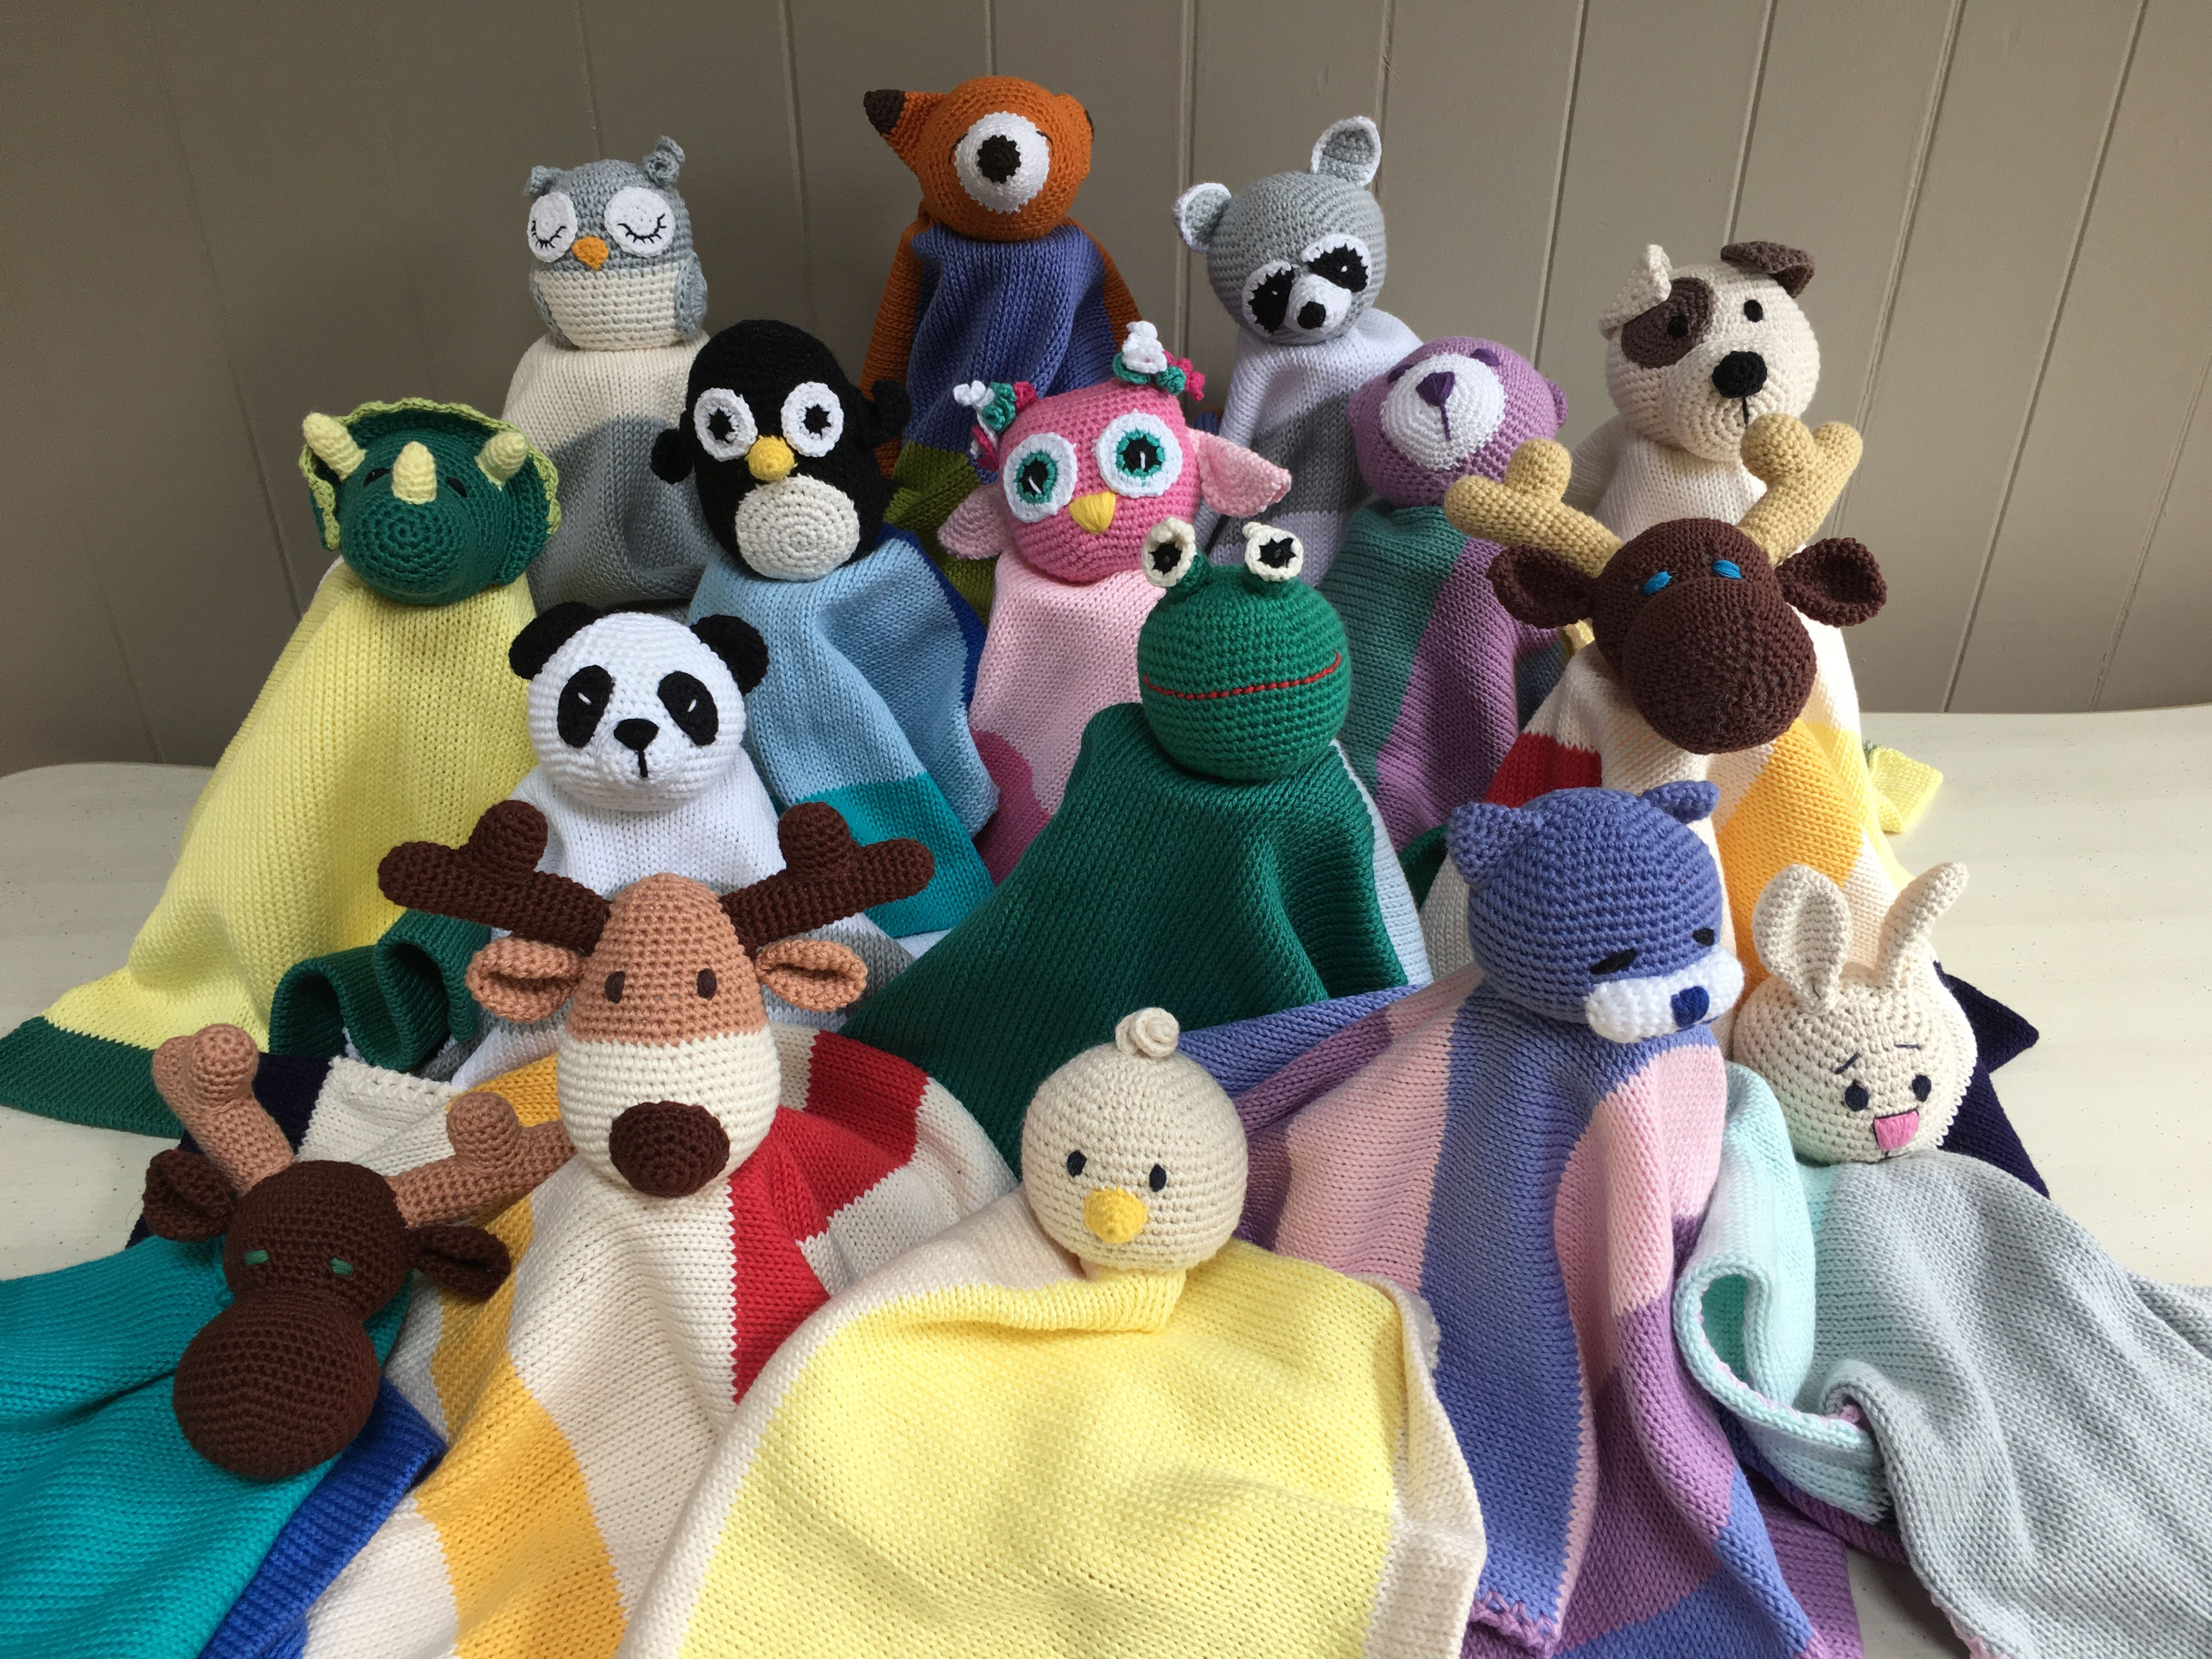 My family of crochet cotton loveys is growing.... 30 EACH